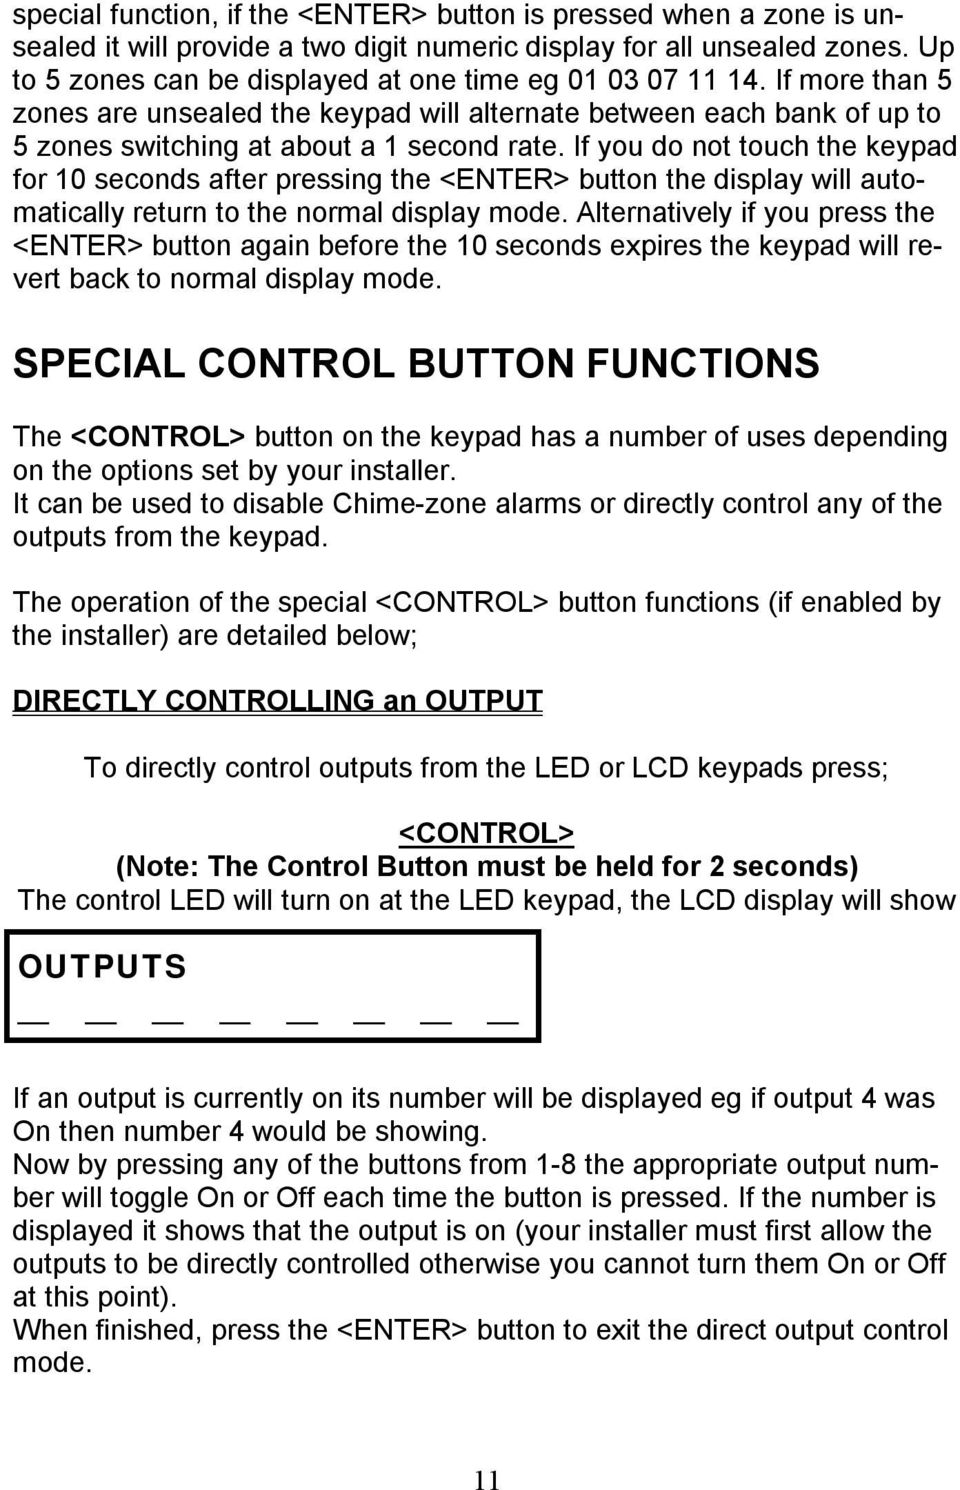 If you do not touch the keypad for 10 seconds after pressing the <ENTER> button the display will automatically return to the normal display mode.